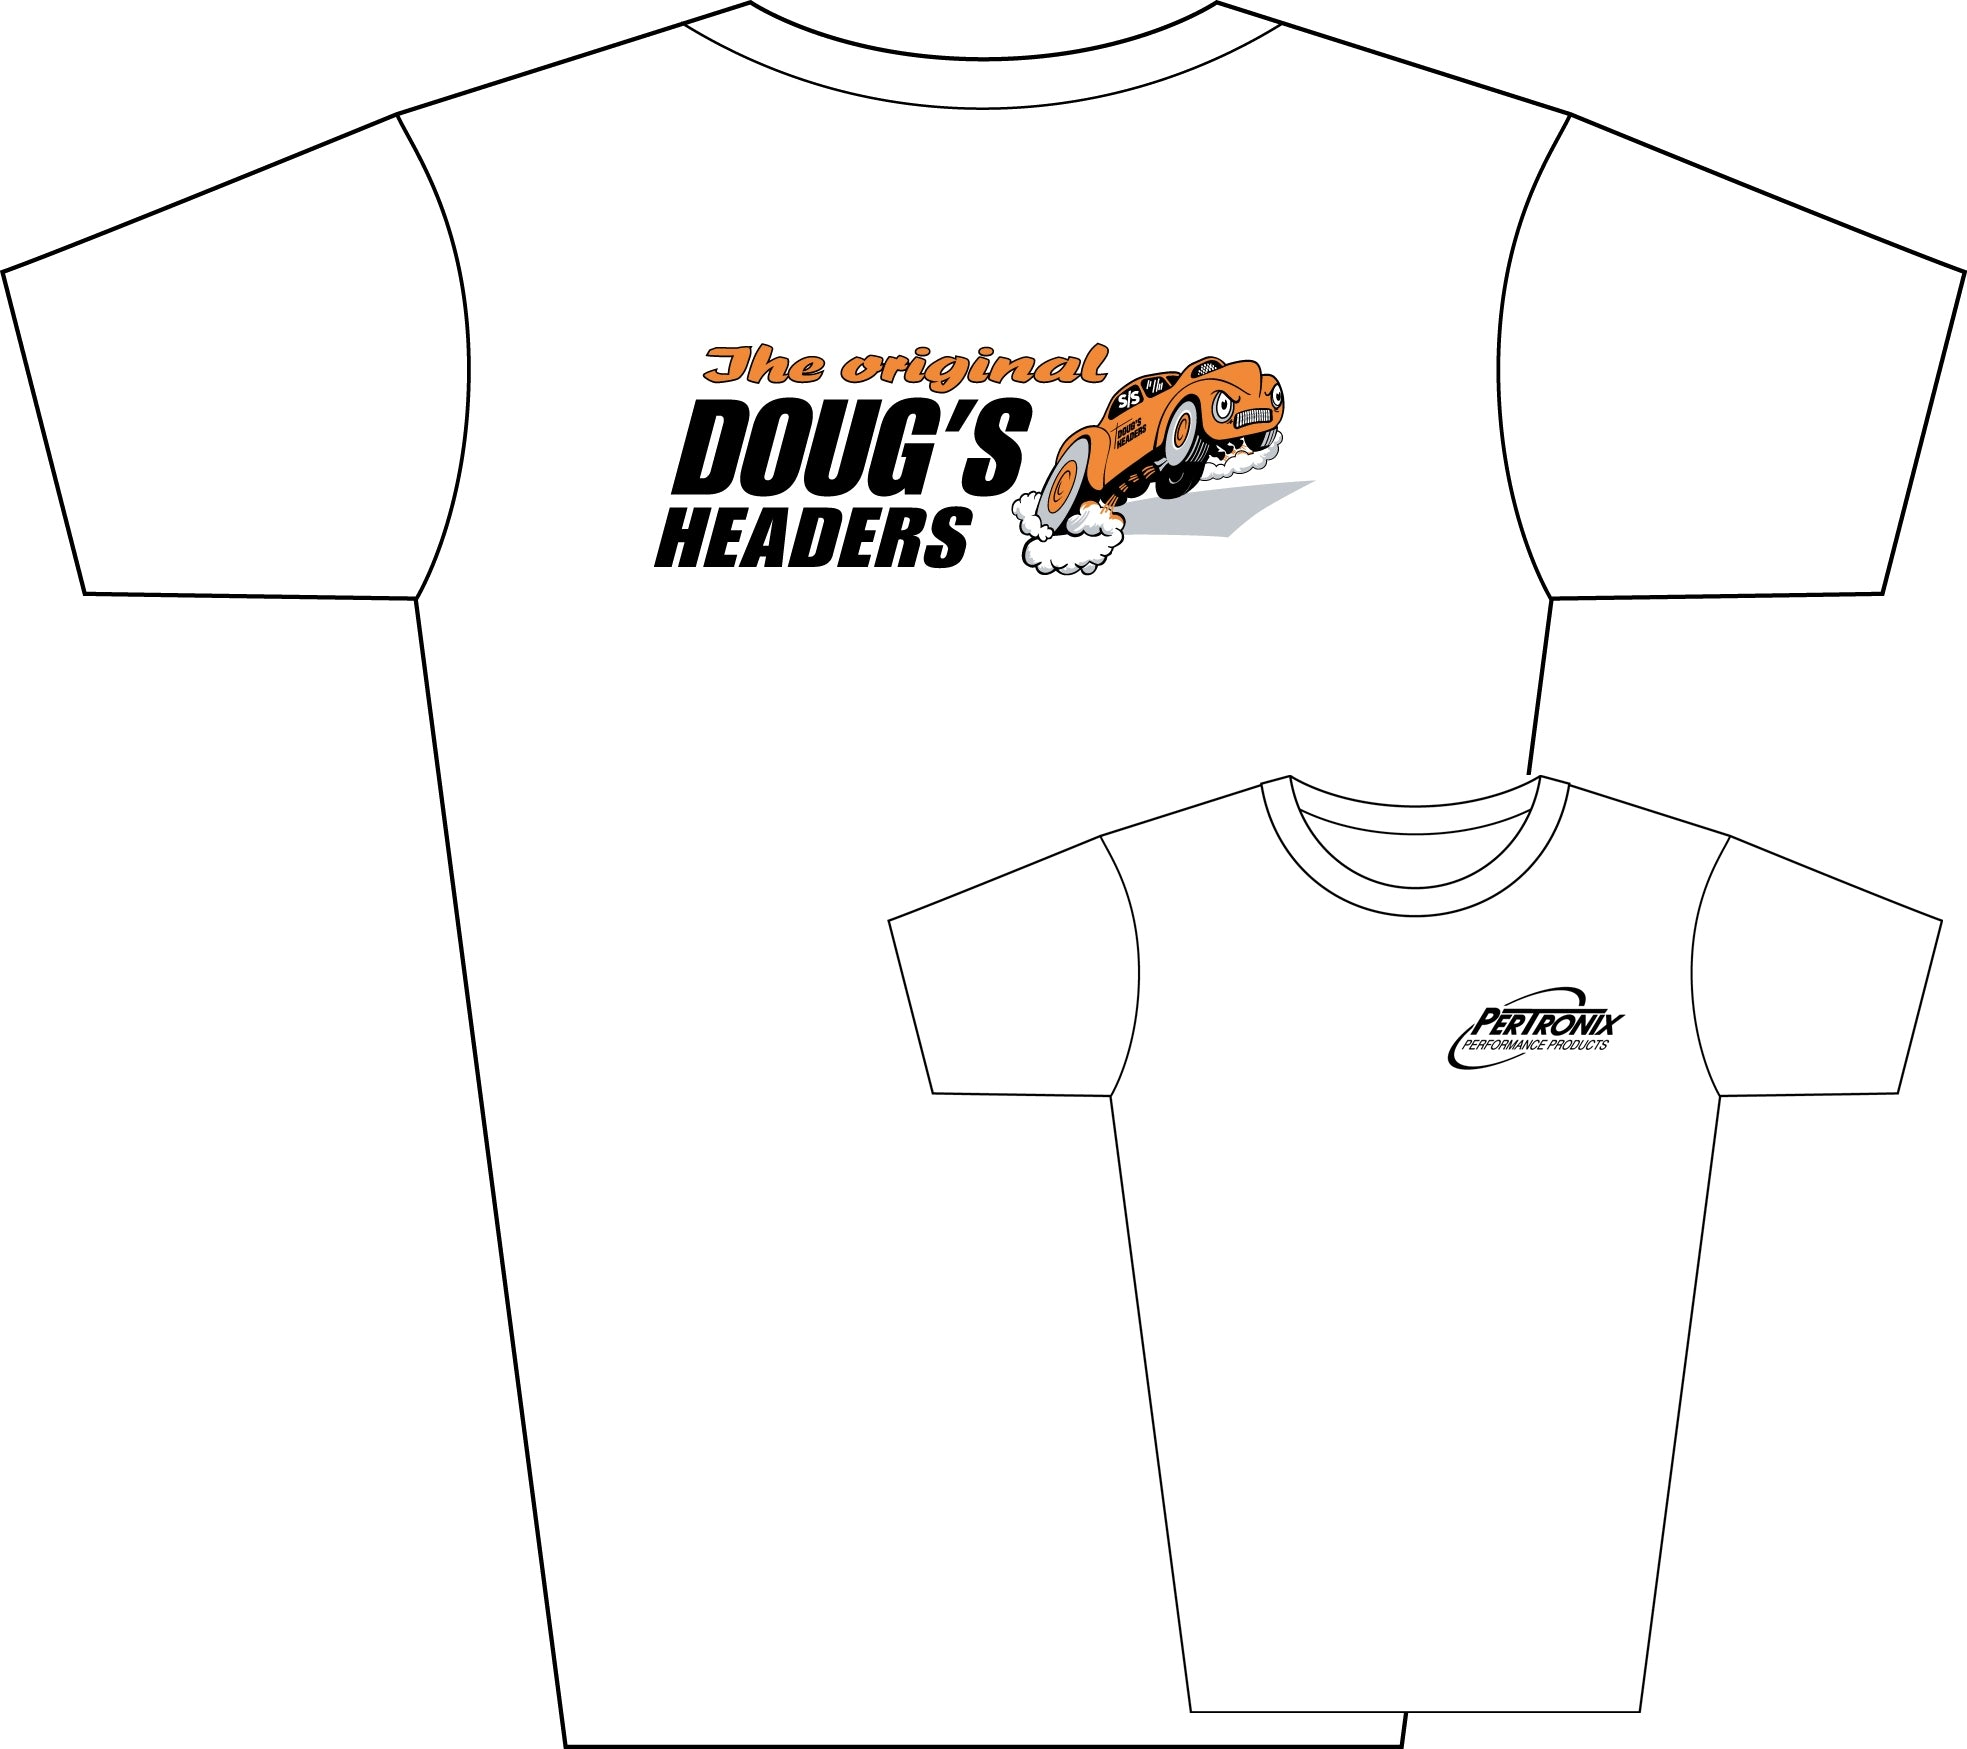 Doug's Headers TS104 Tee Shirt White XXL